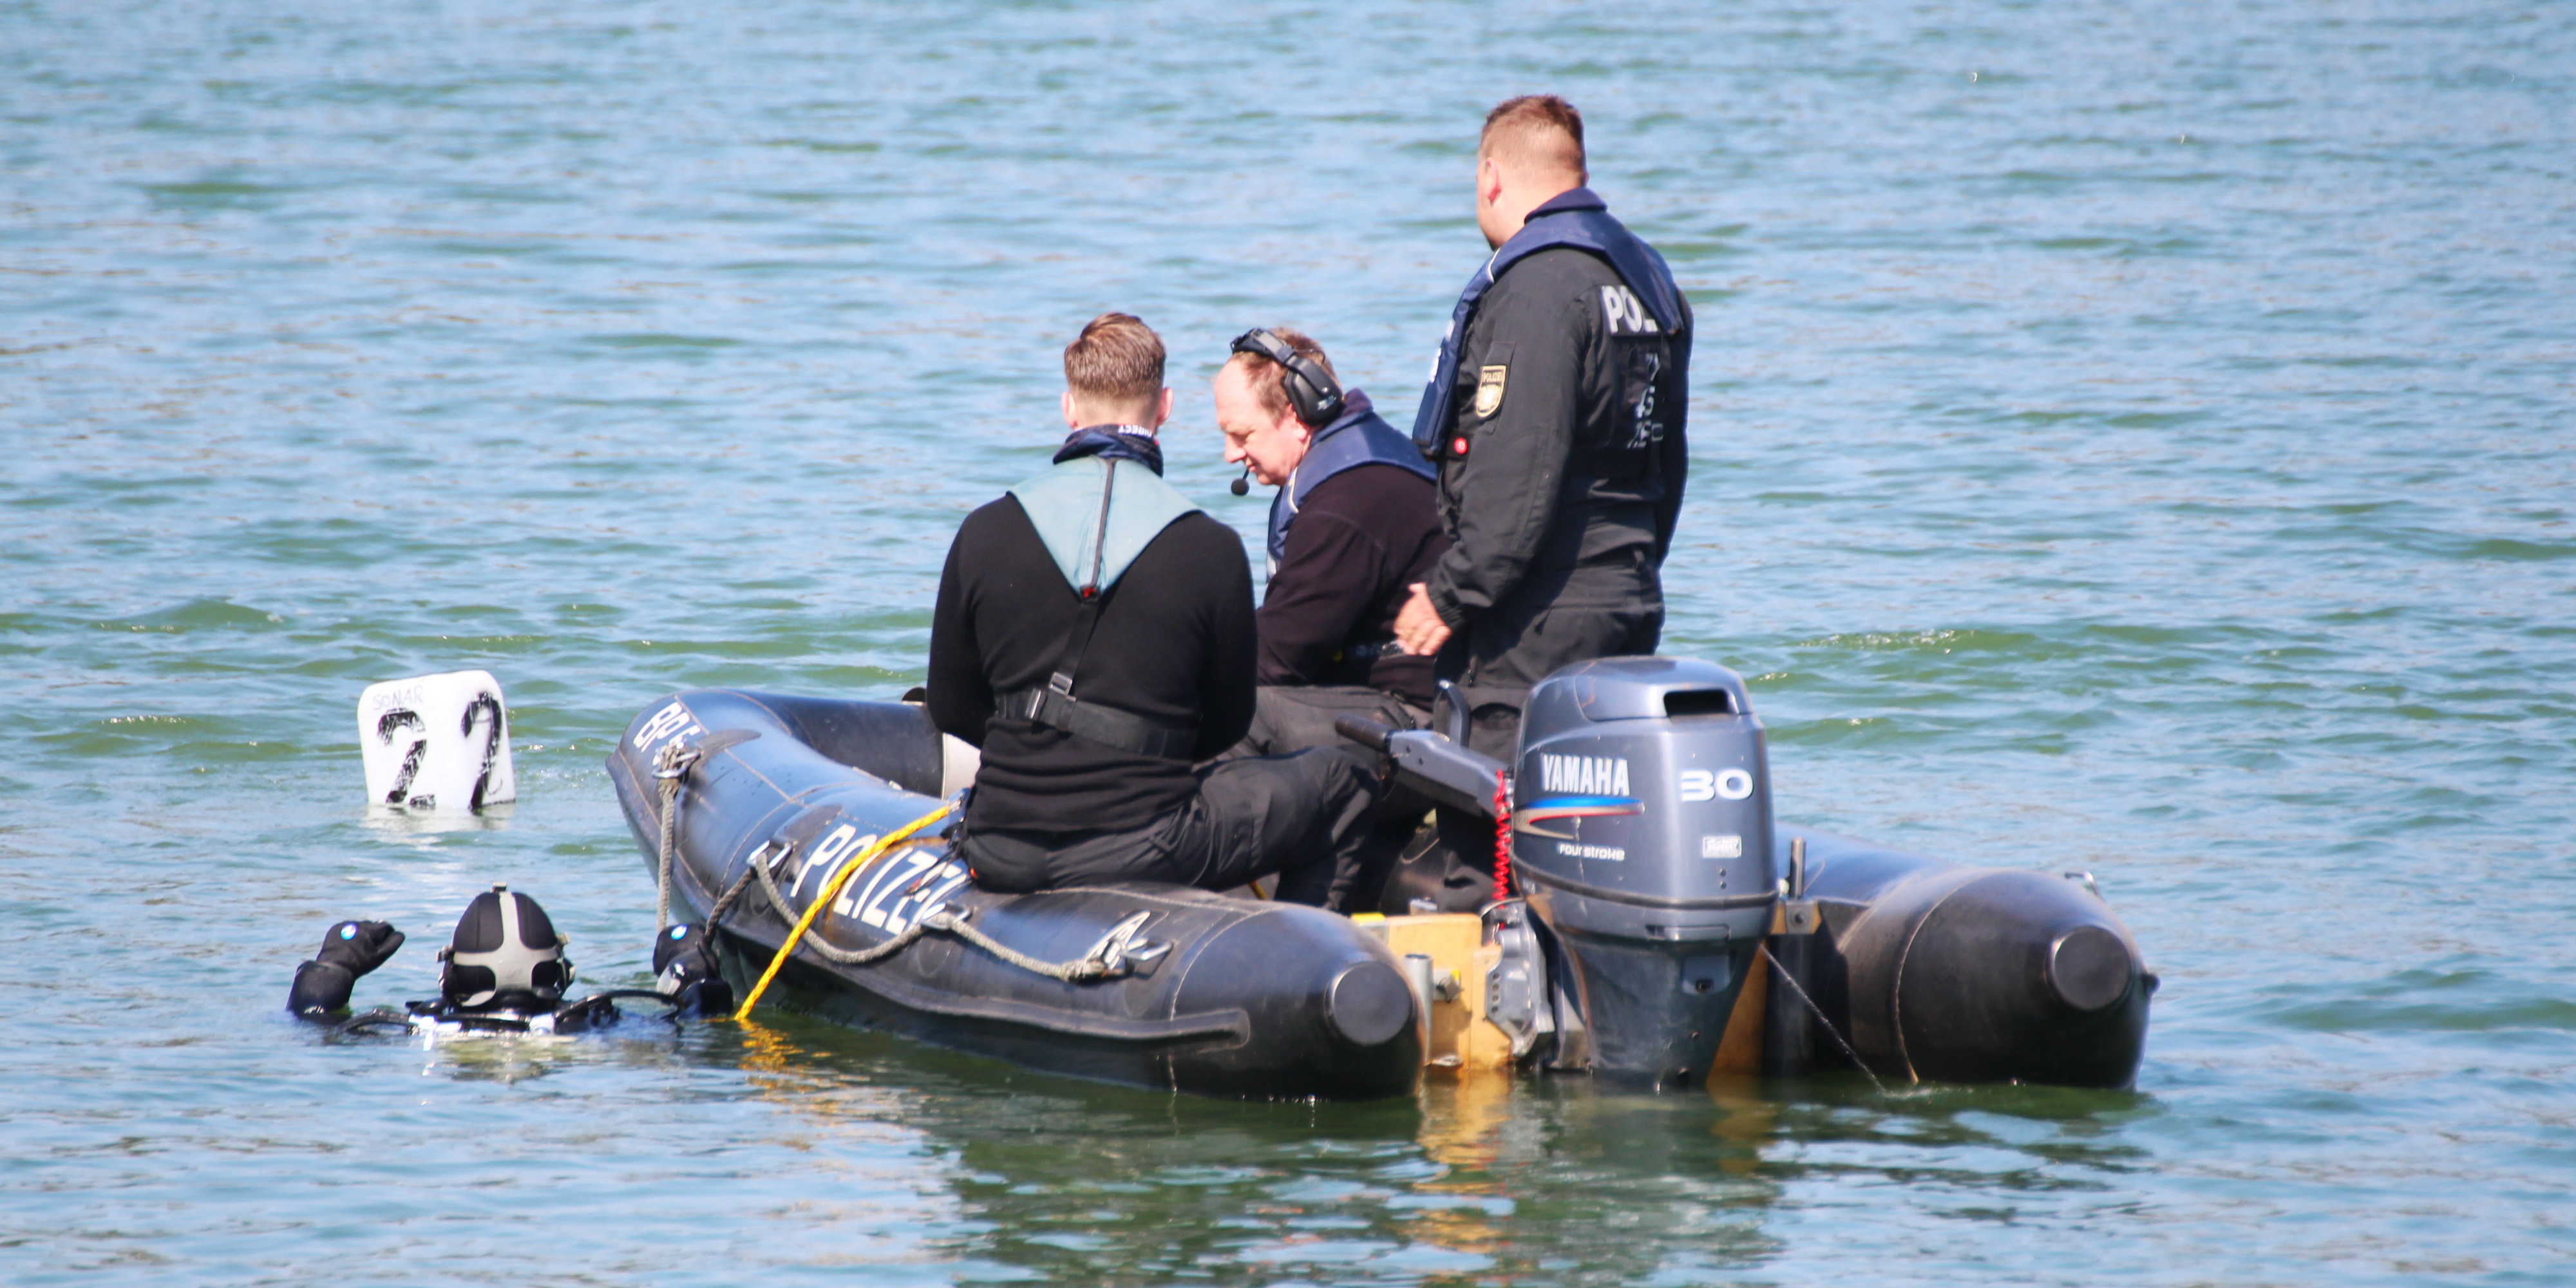 A PADI professional diver helps to assist in a police investigation. This is one of may jobs that involve scuba diving.